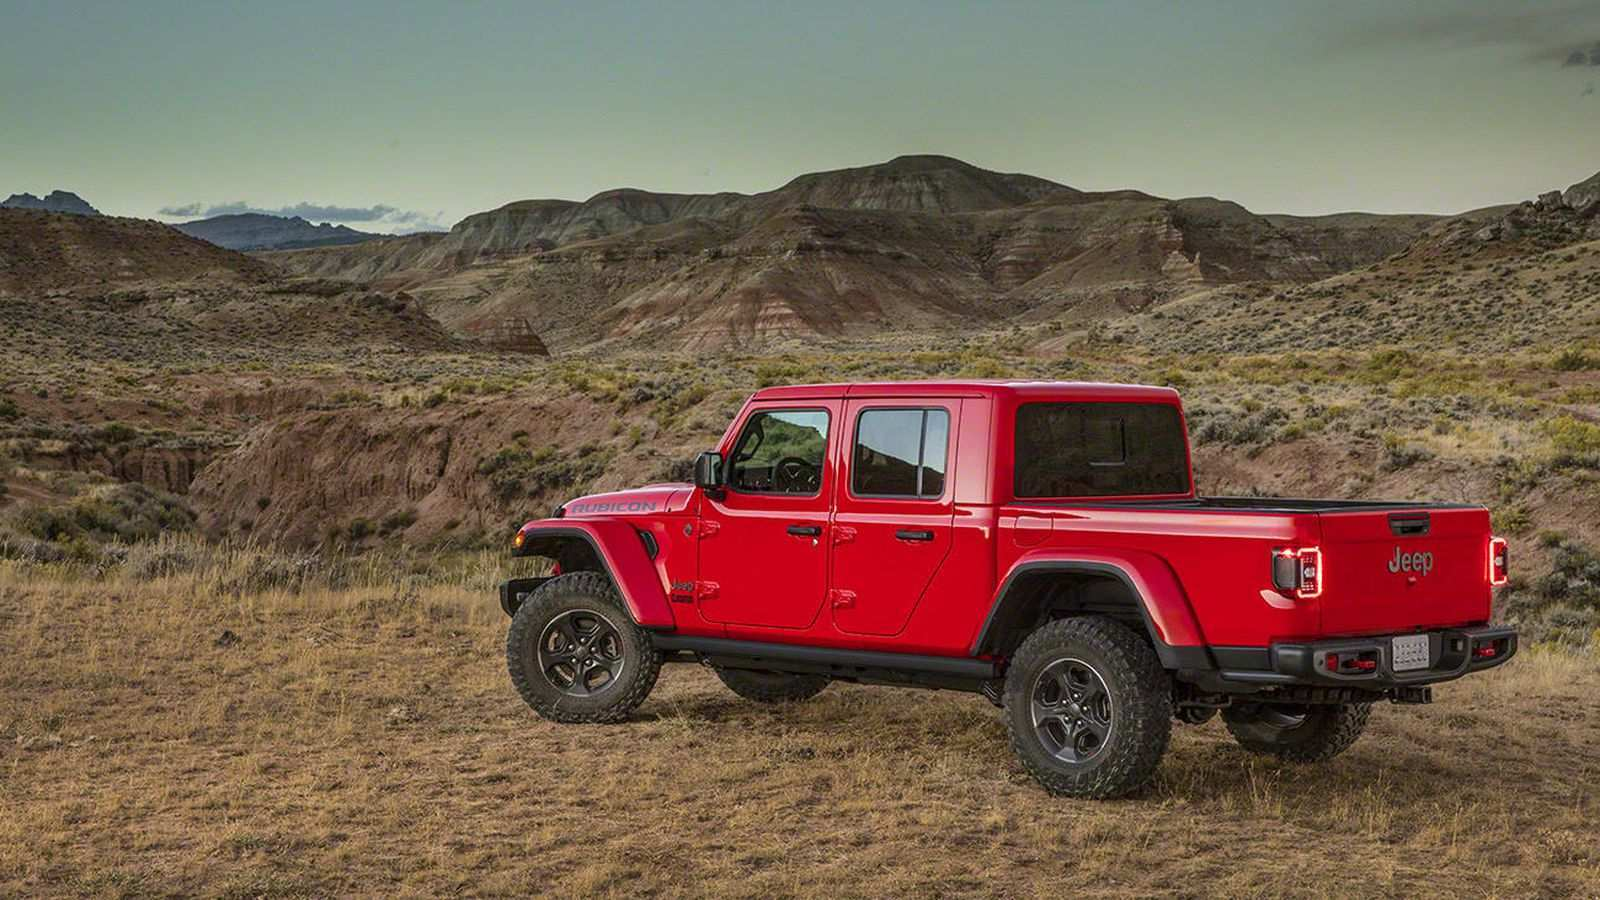 38 Gallery of New Jeep Pickup 2020 Overview with New Jeep Pickup 2020